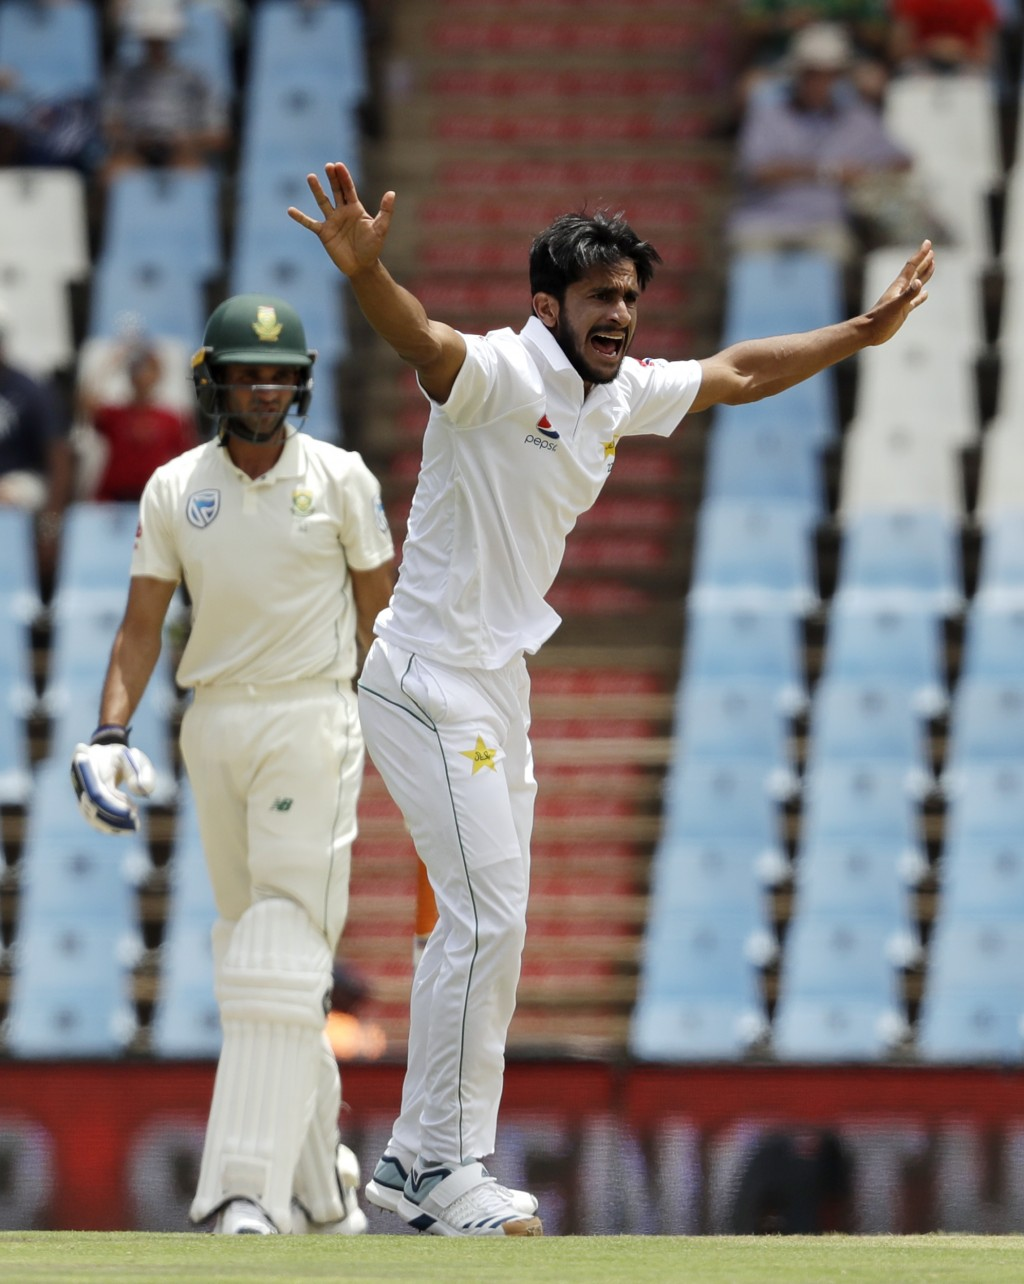 Pakistan's bowler Hasan Ali, right, successfully appeals for LBW against South Africa's batsman Keshav Maharaj on day two of the first cricket test ma...